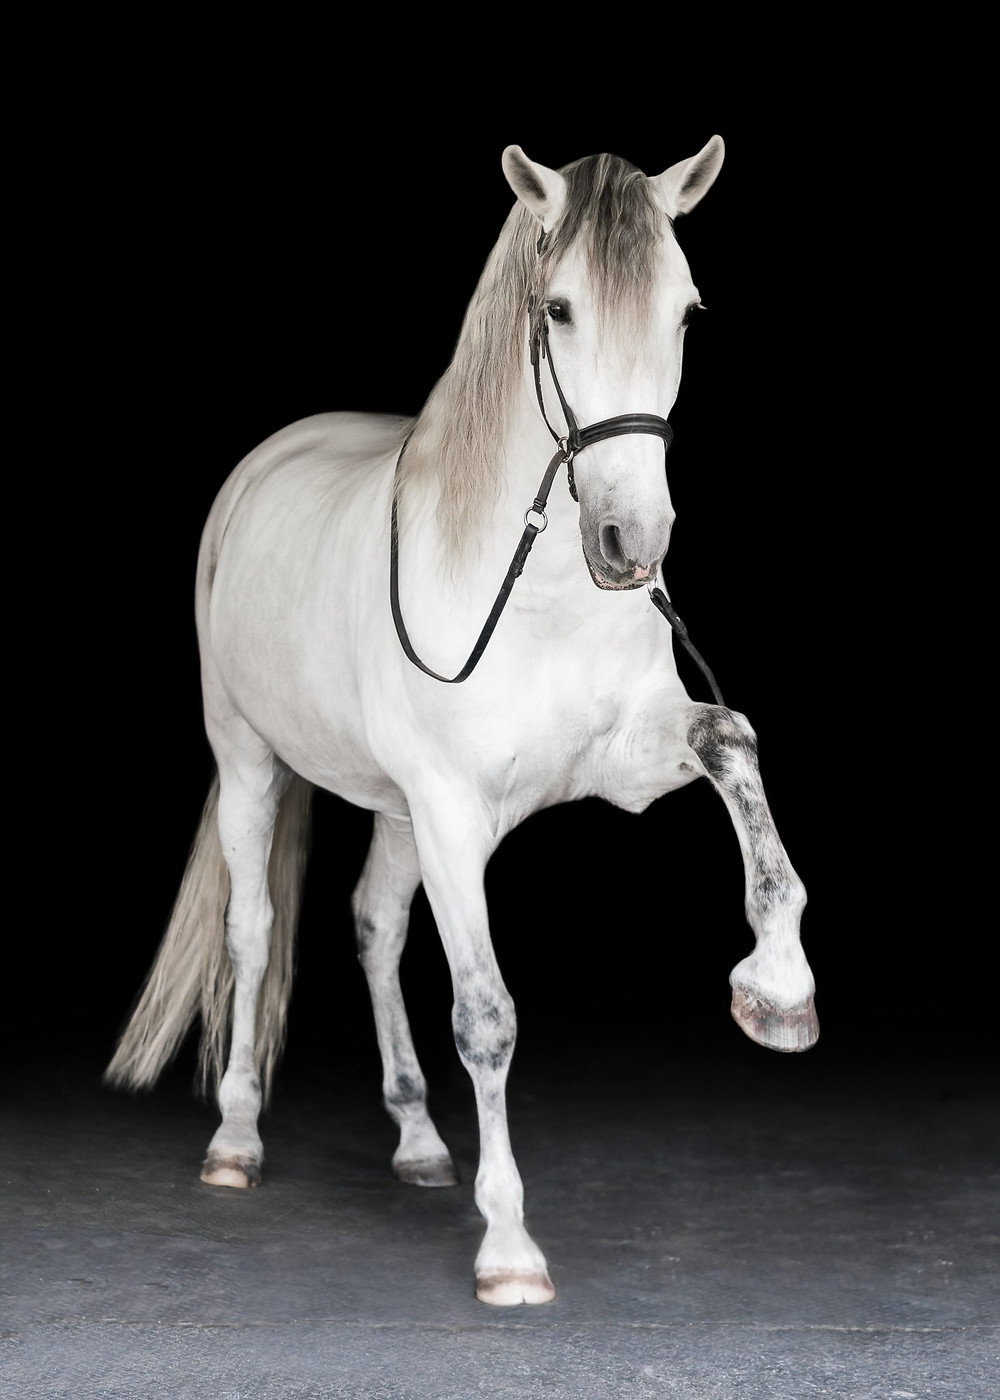 an andalusian doing the Spanish walk on a black background